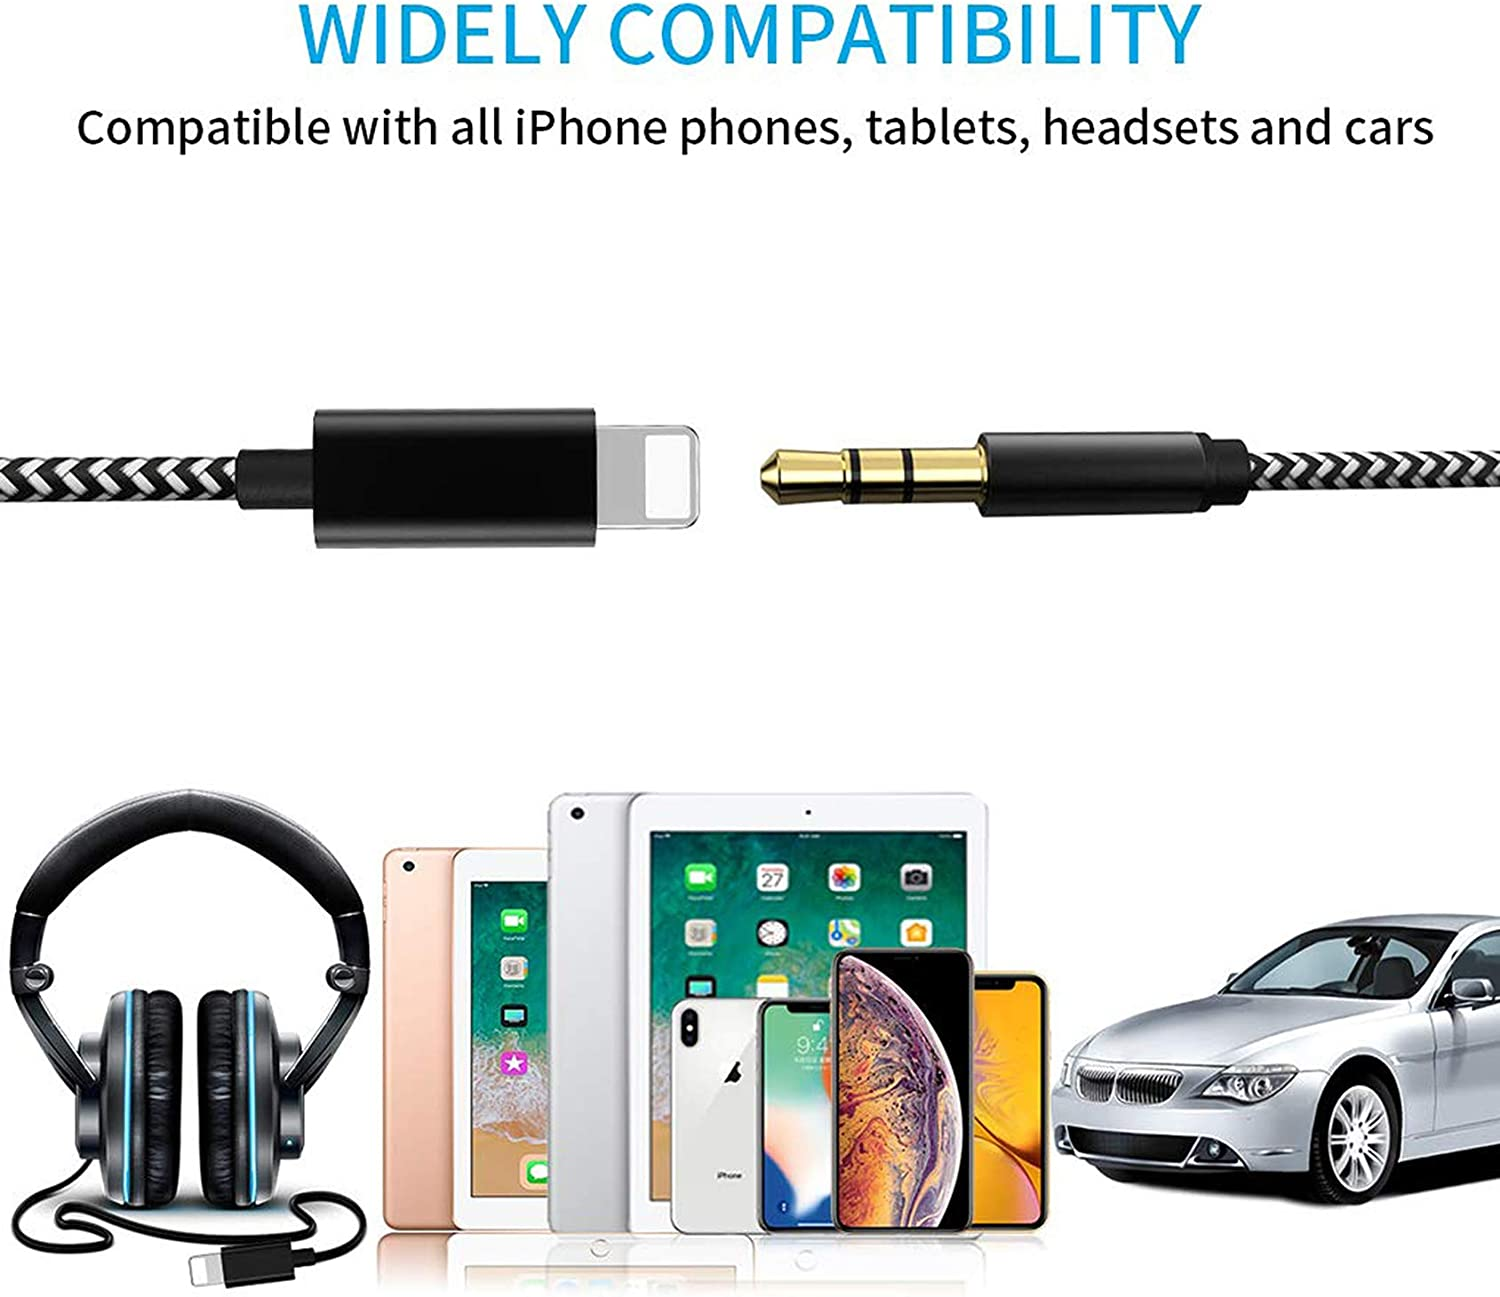 CHOOBY 3.5mm Aux Cable for Car for iPhone X//XR//XS Max//11//11 Pro to Car Stereo Aux Cord for iPhone 8 for Car Upgraded Version Braided Zebra Speaker or Headphone Adapter Support iOS 12